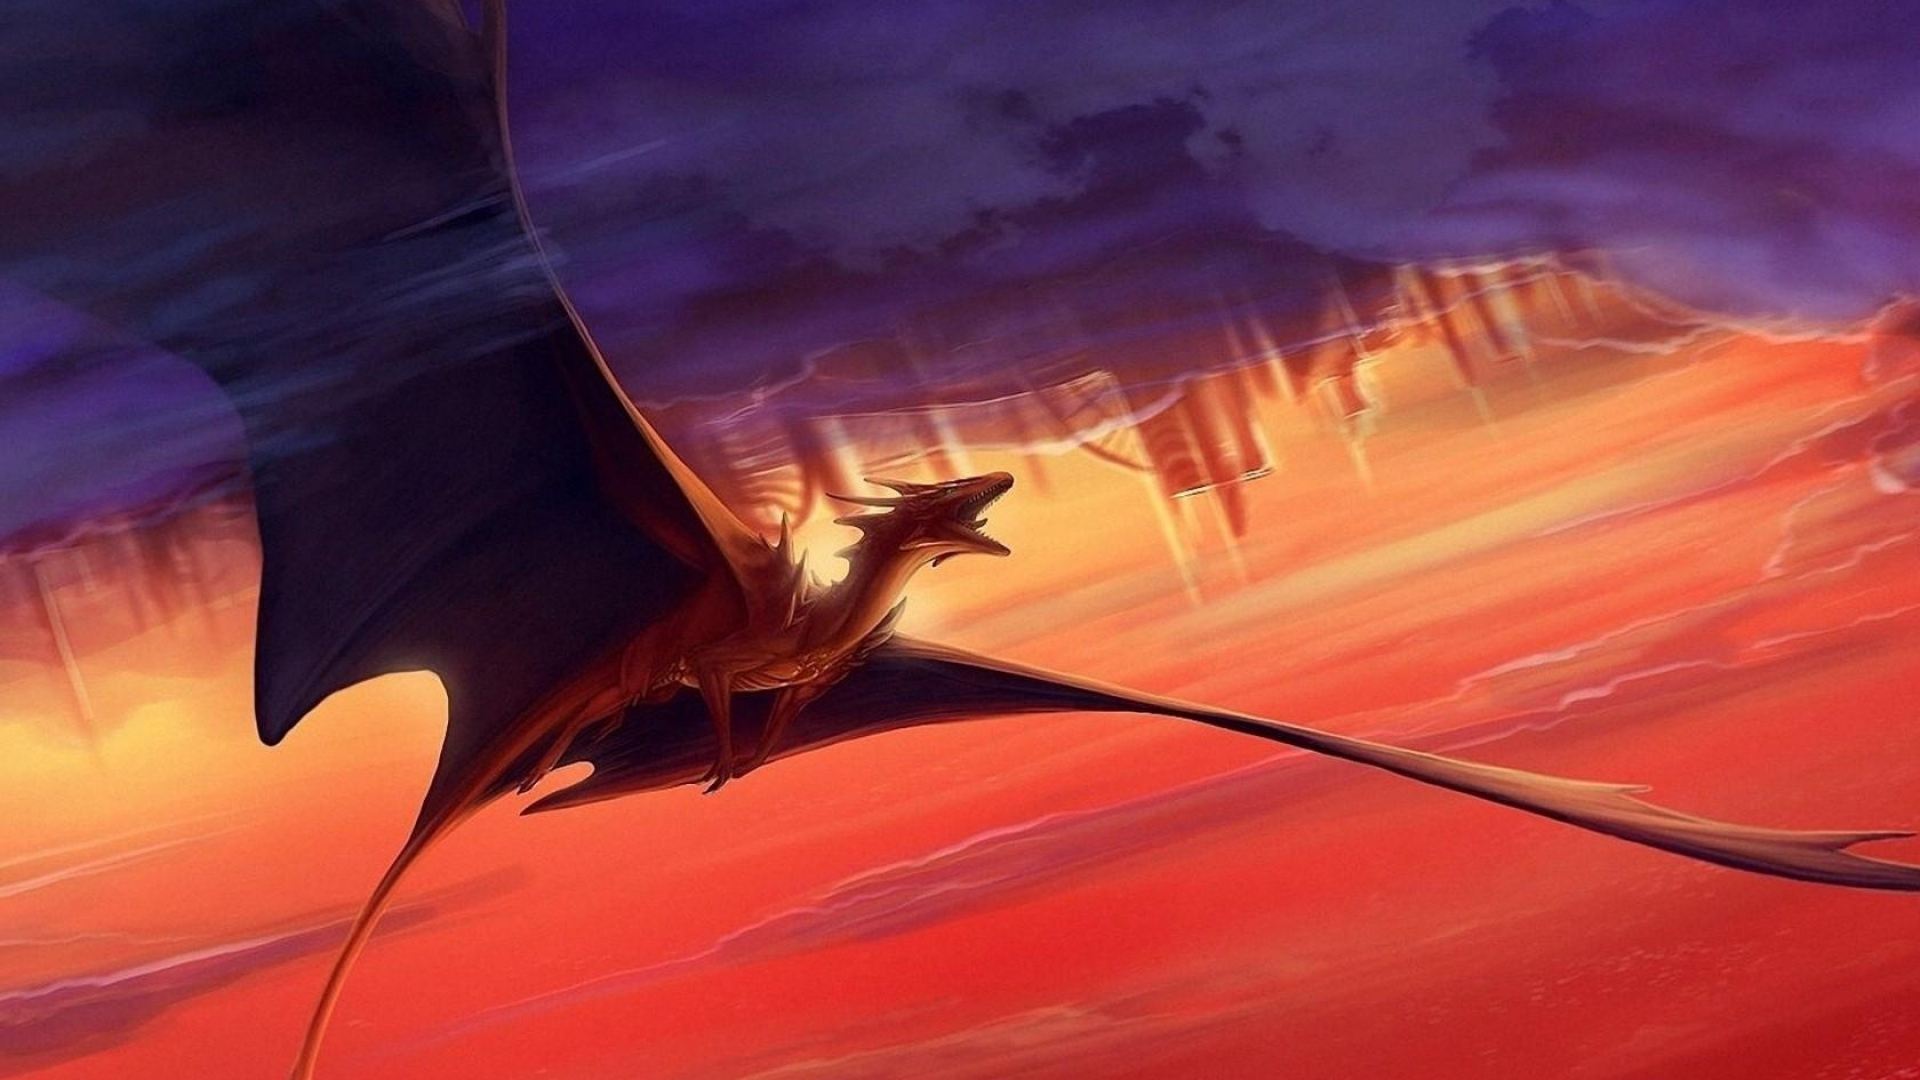 Spyro The Dragon Sunset Wallpaper by Cowboygineer on ... |Dragons And Sunsets